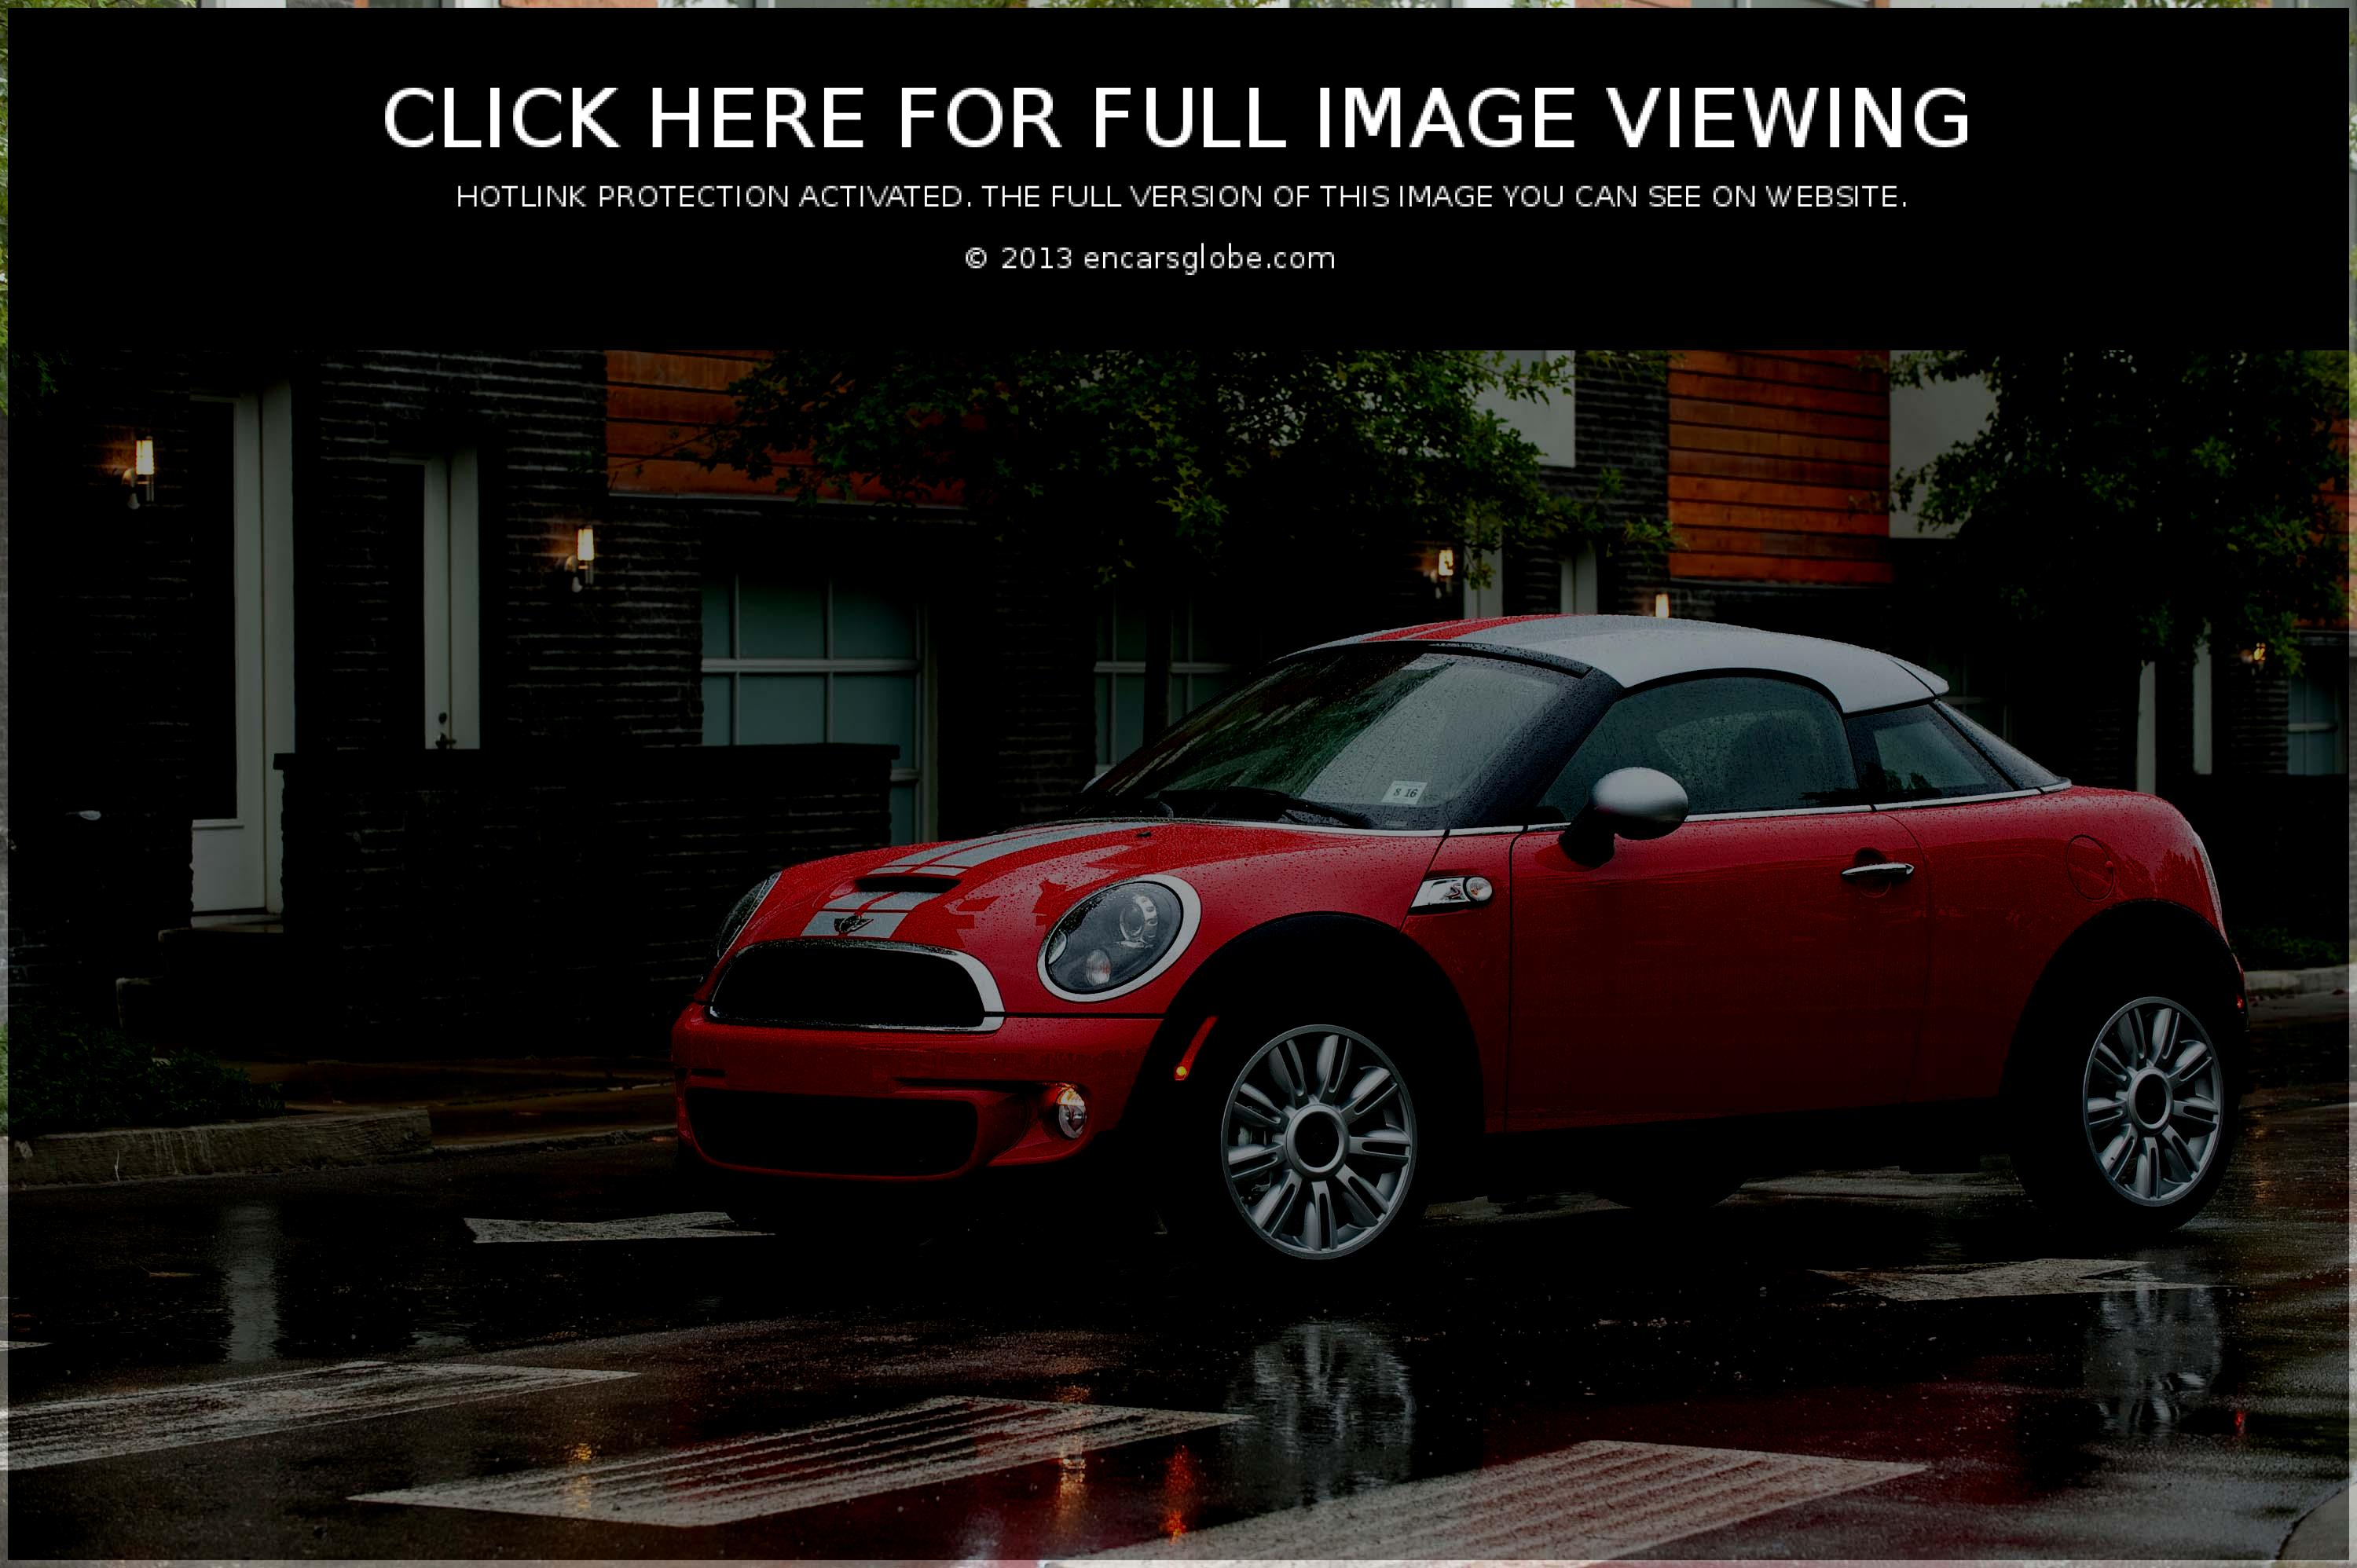 Mini Coupé Cooper S Photo Gallery: Photo #11 out of 11, Image Size ...